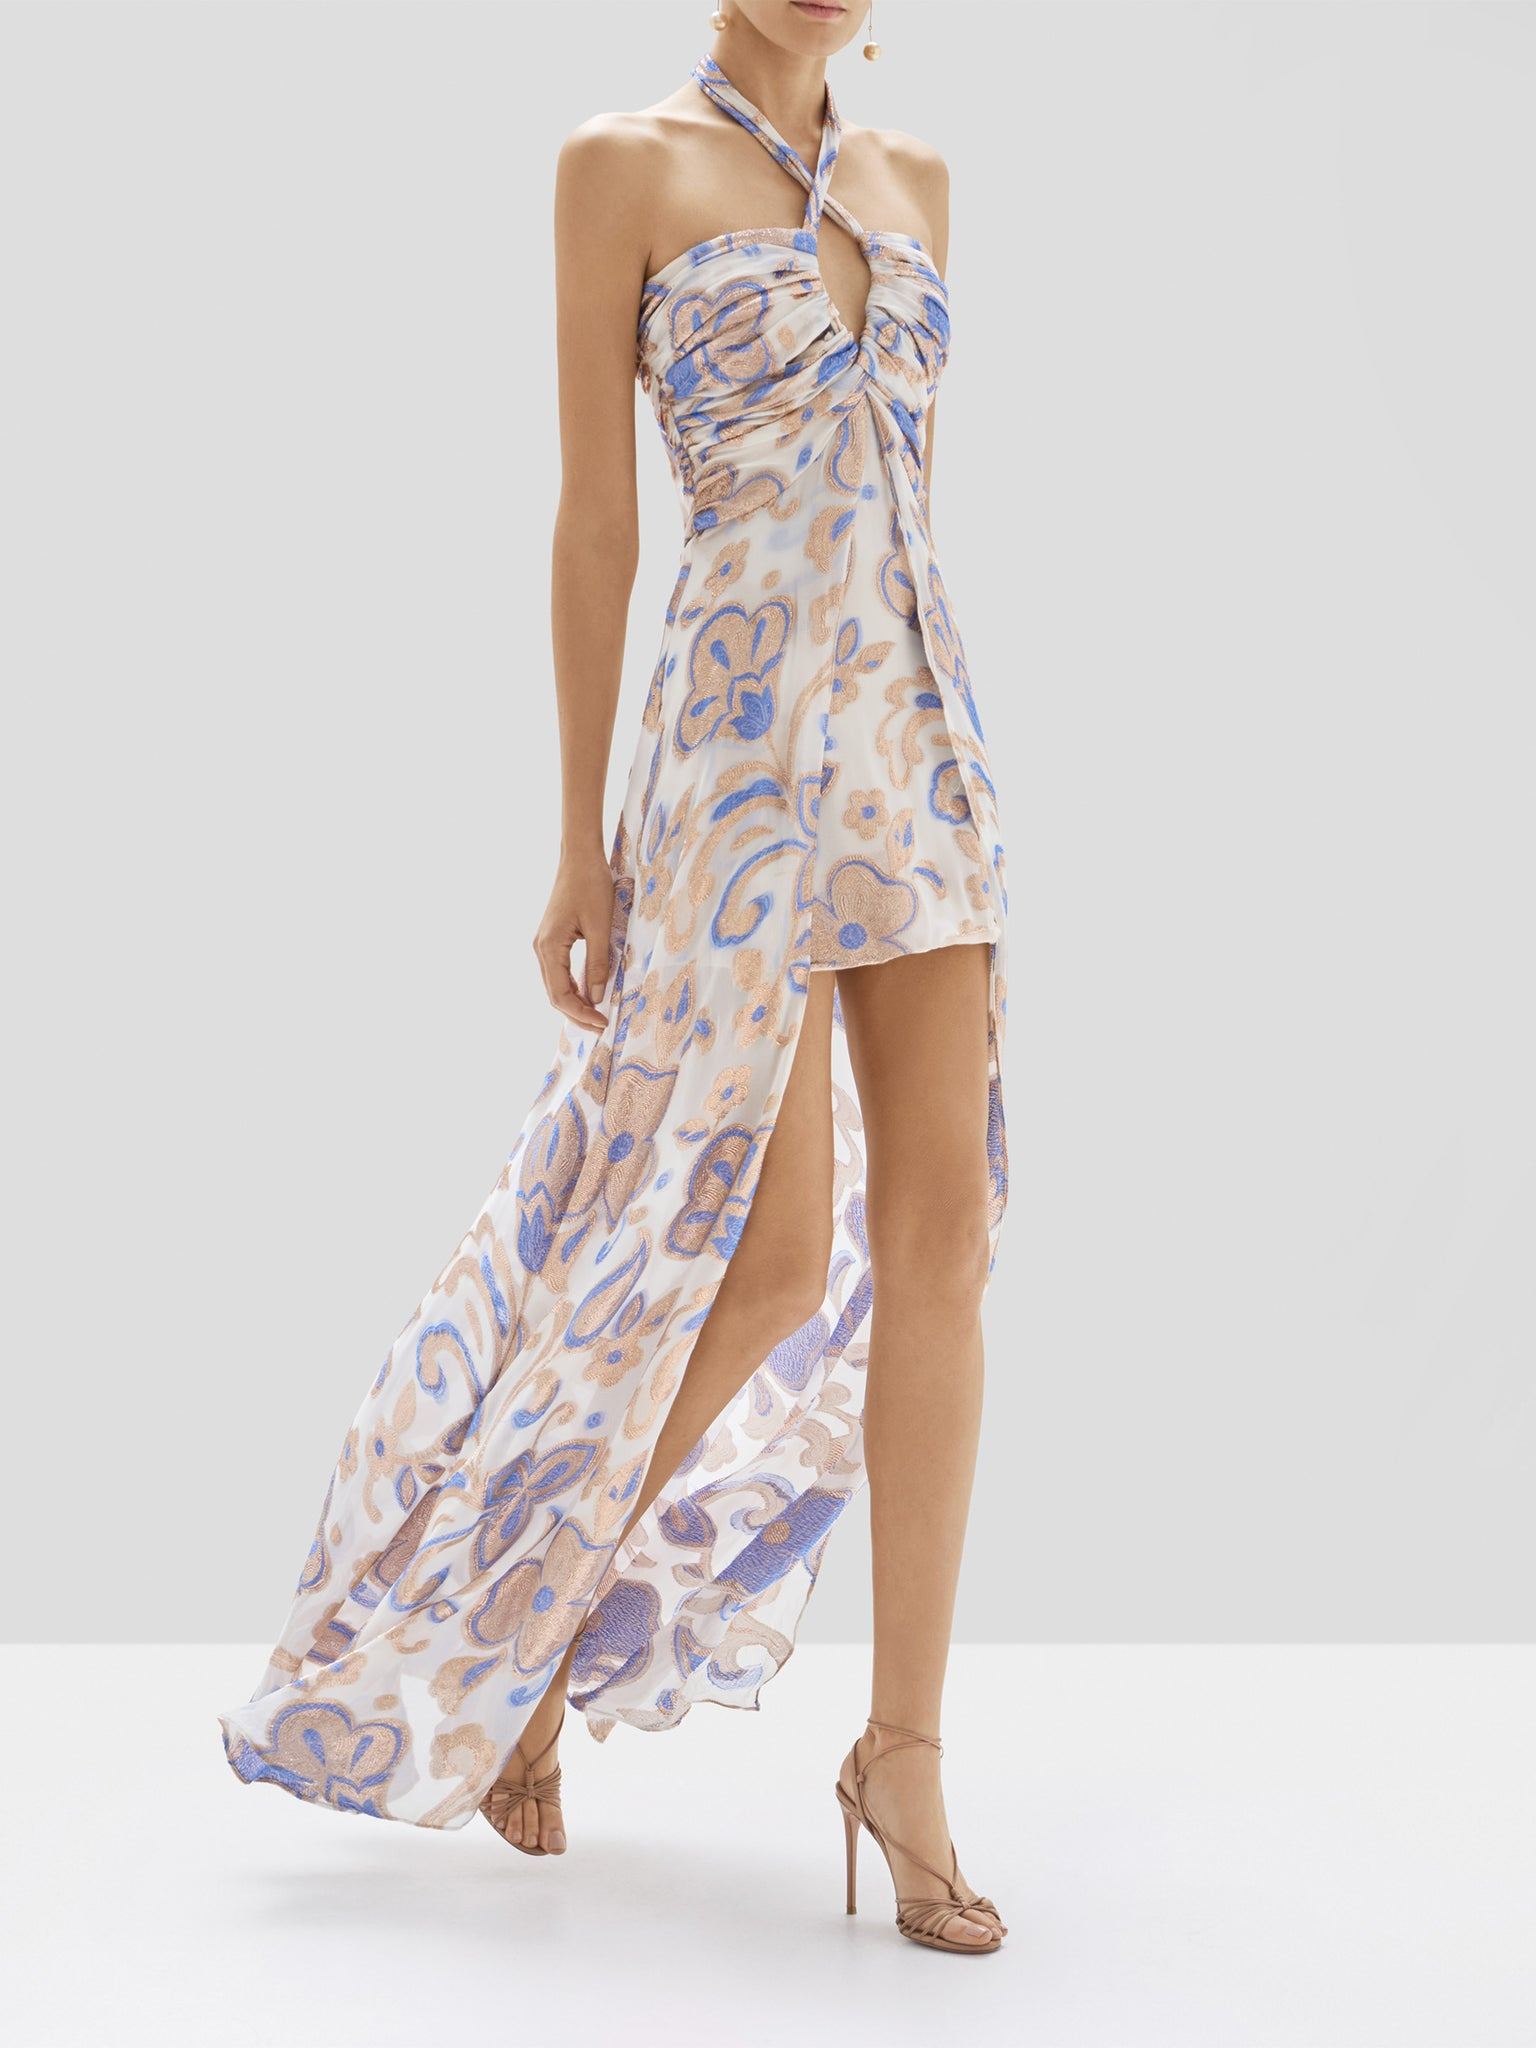 Alexis Falana Dress in Cerulean Garden from Pre Spring 2020